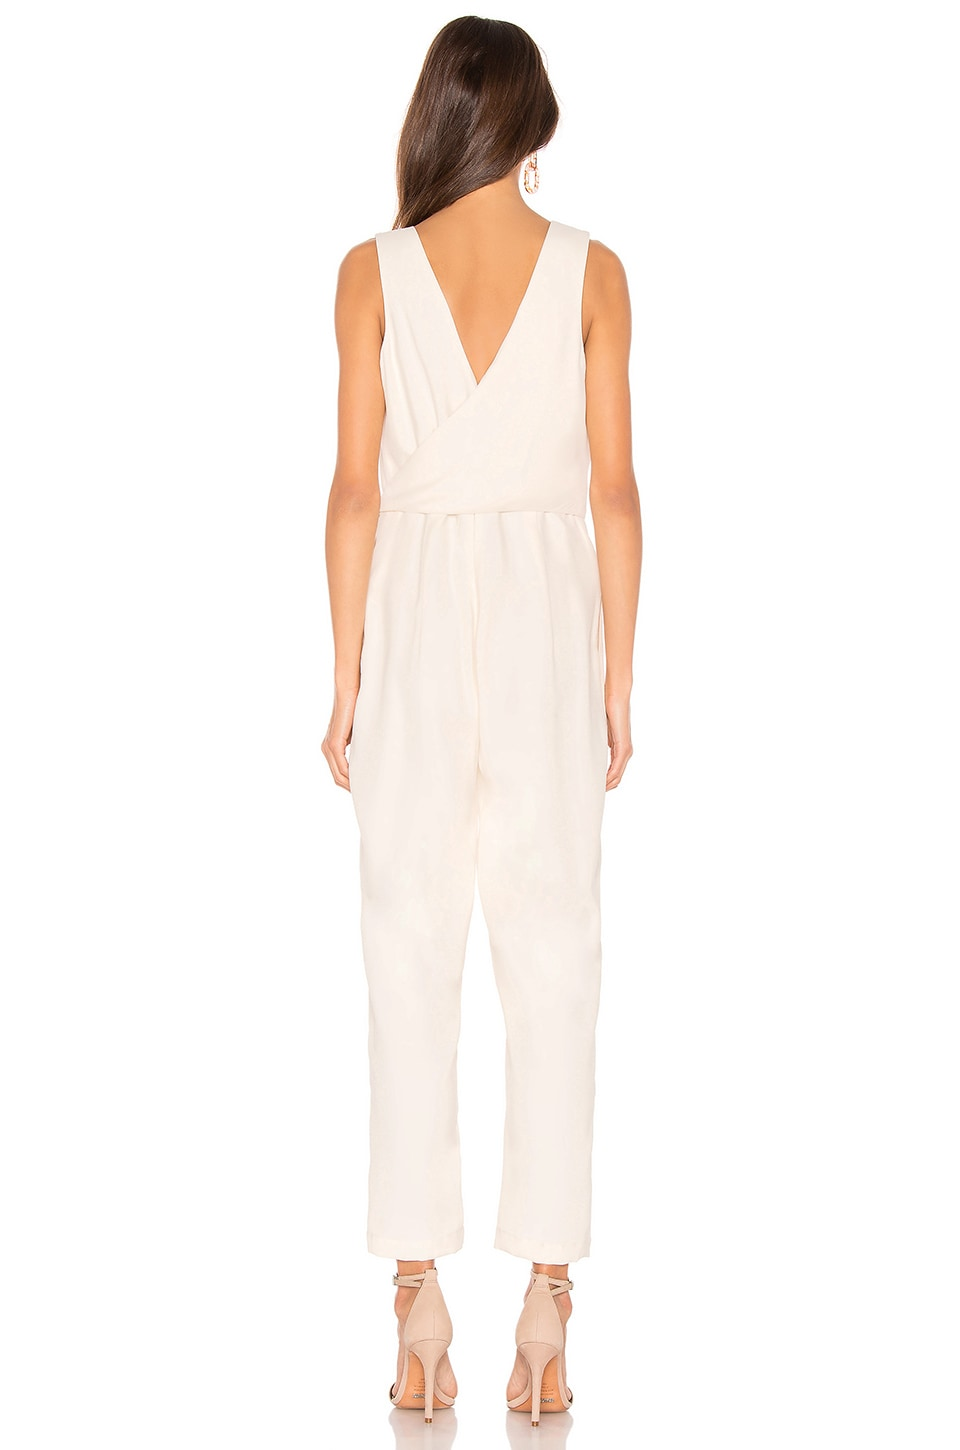 Wrap Front Jumpsuit, view 3, click to view large image.